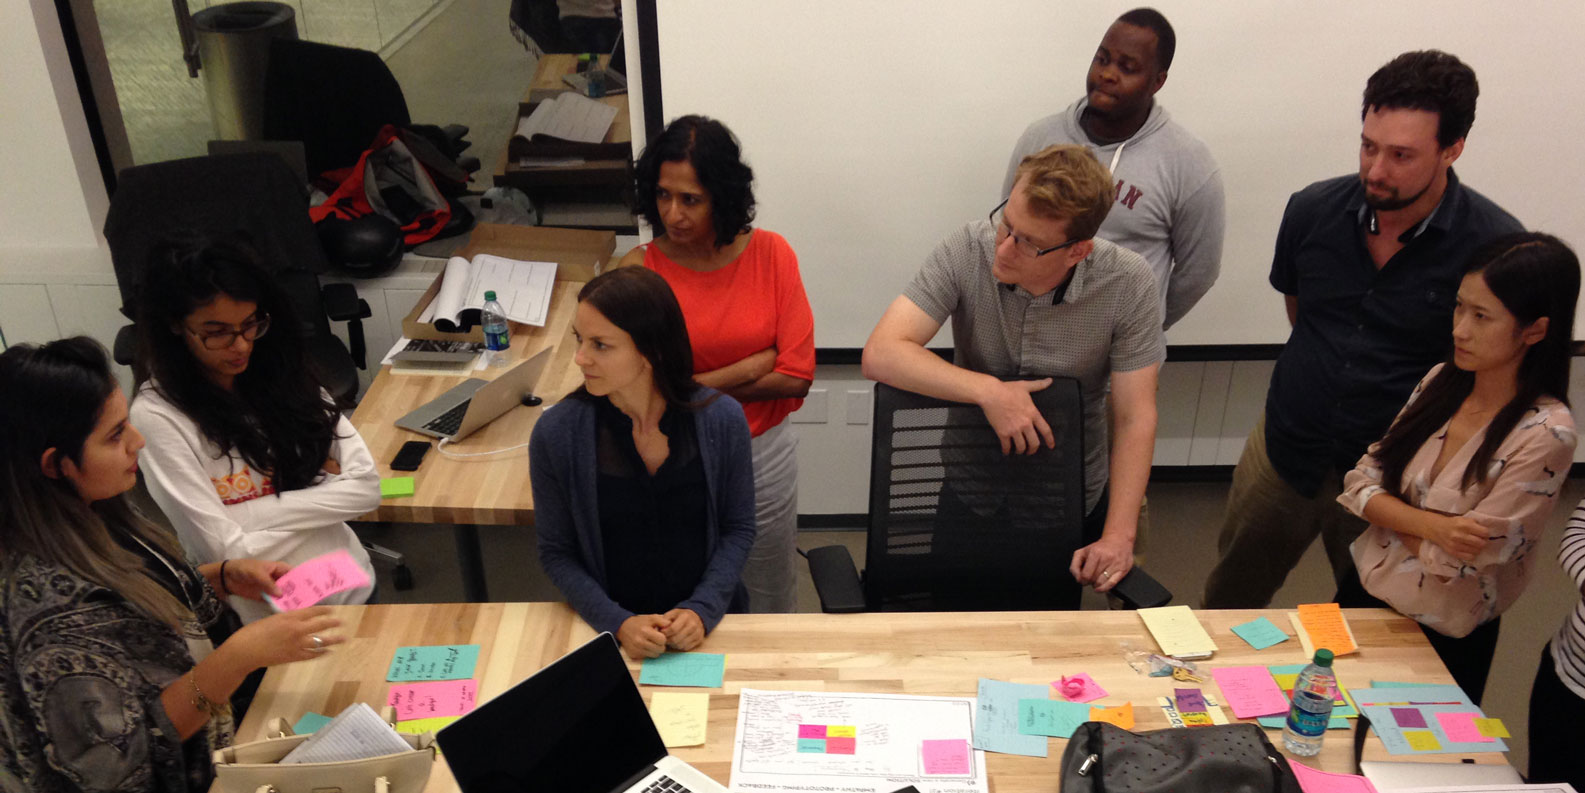 Students work together around a desk at Medill's San Francisco space